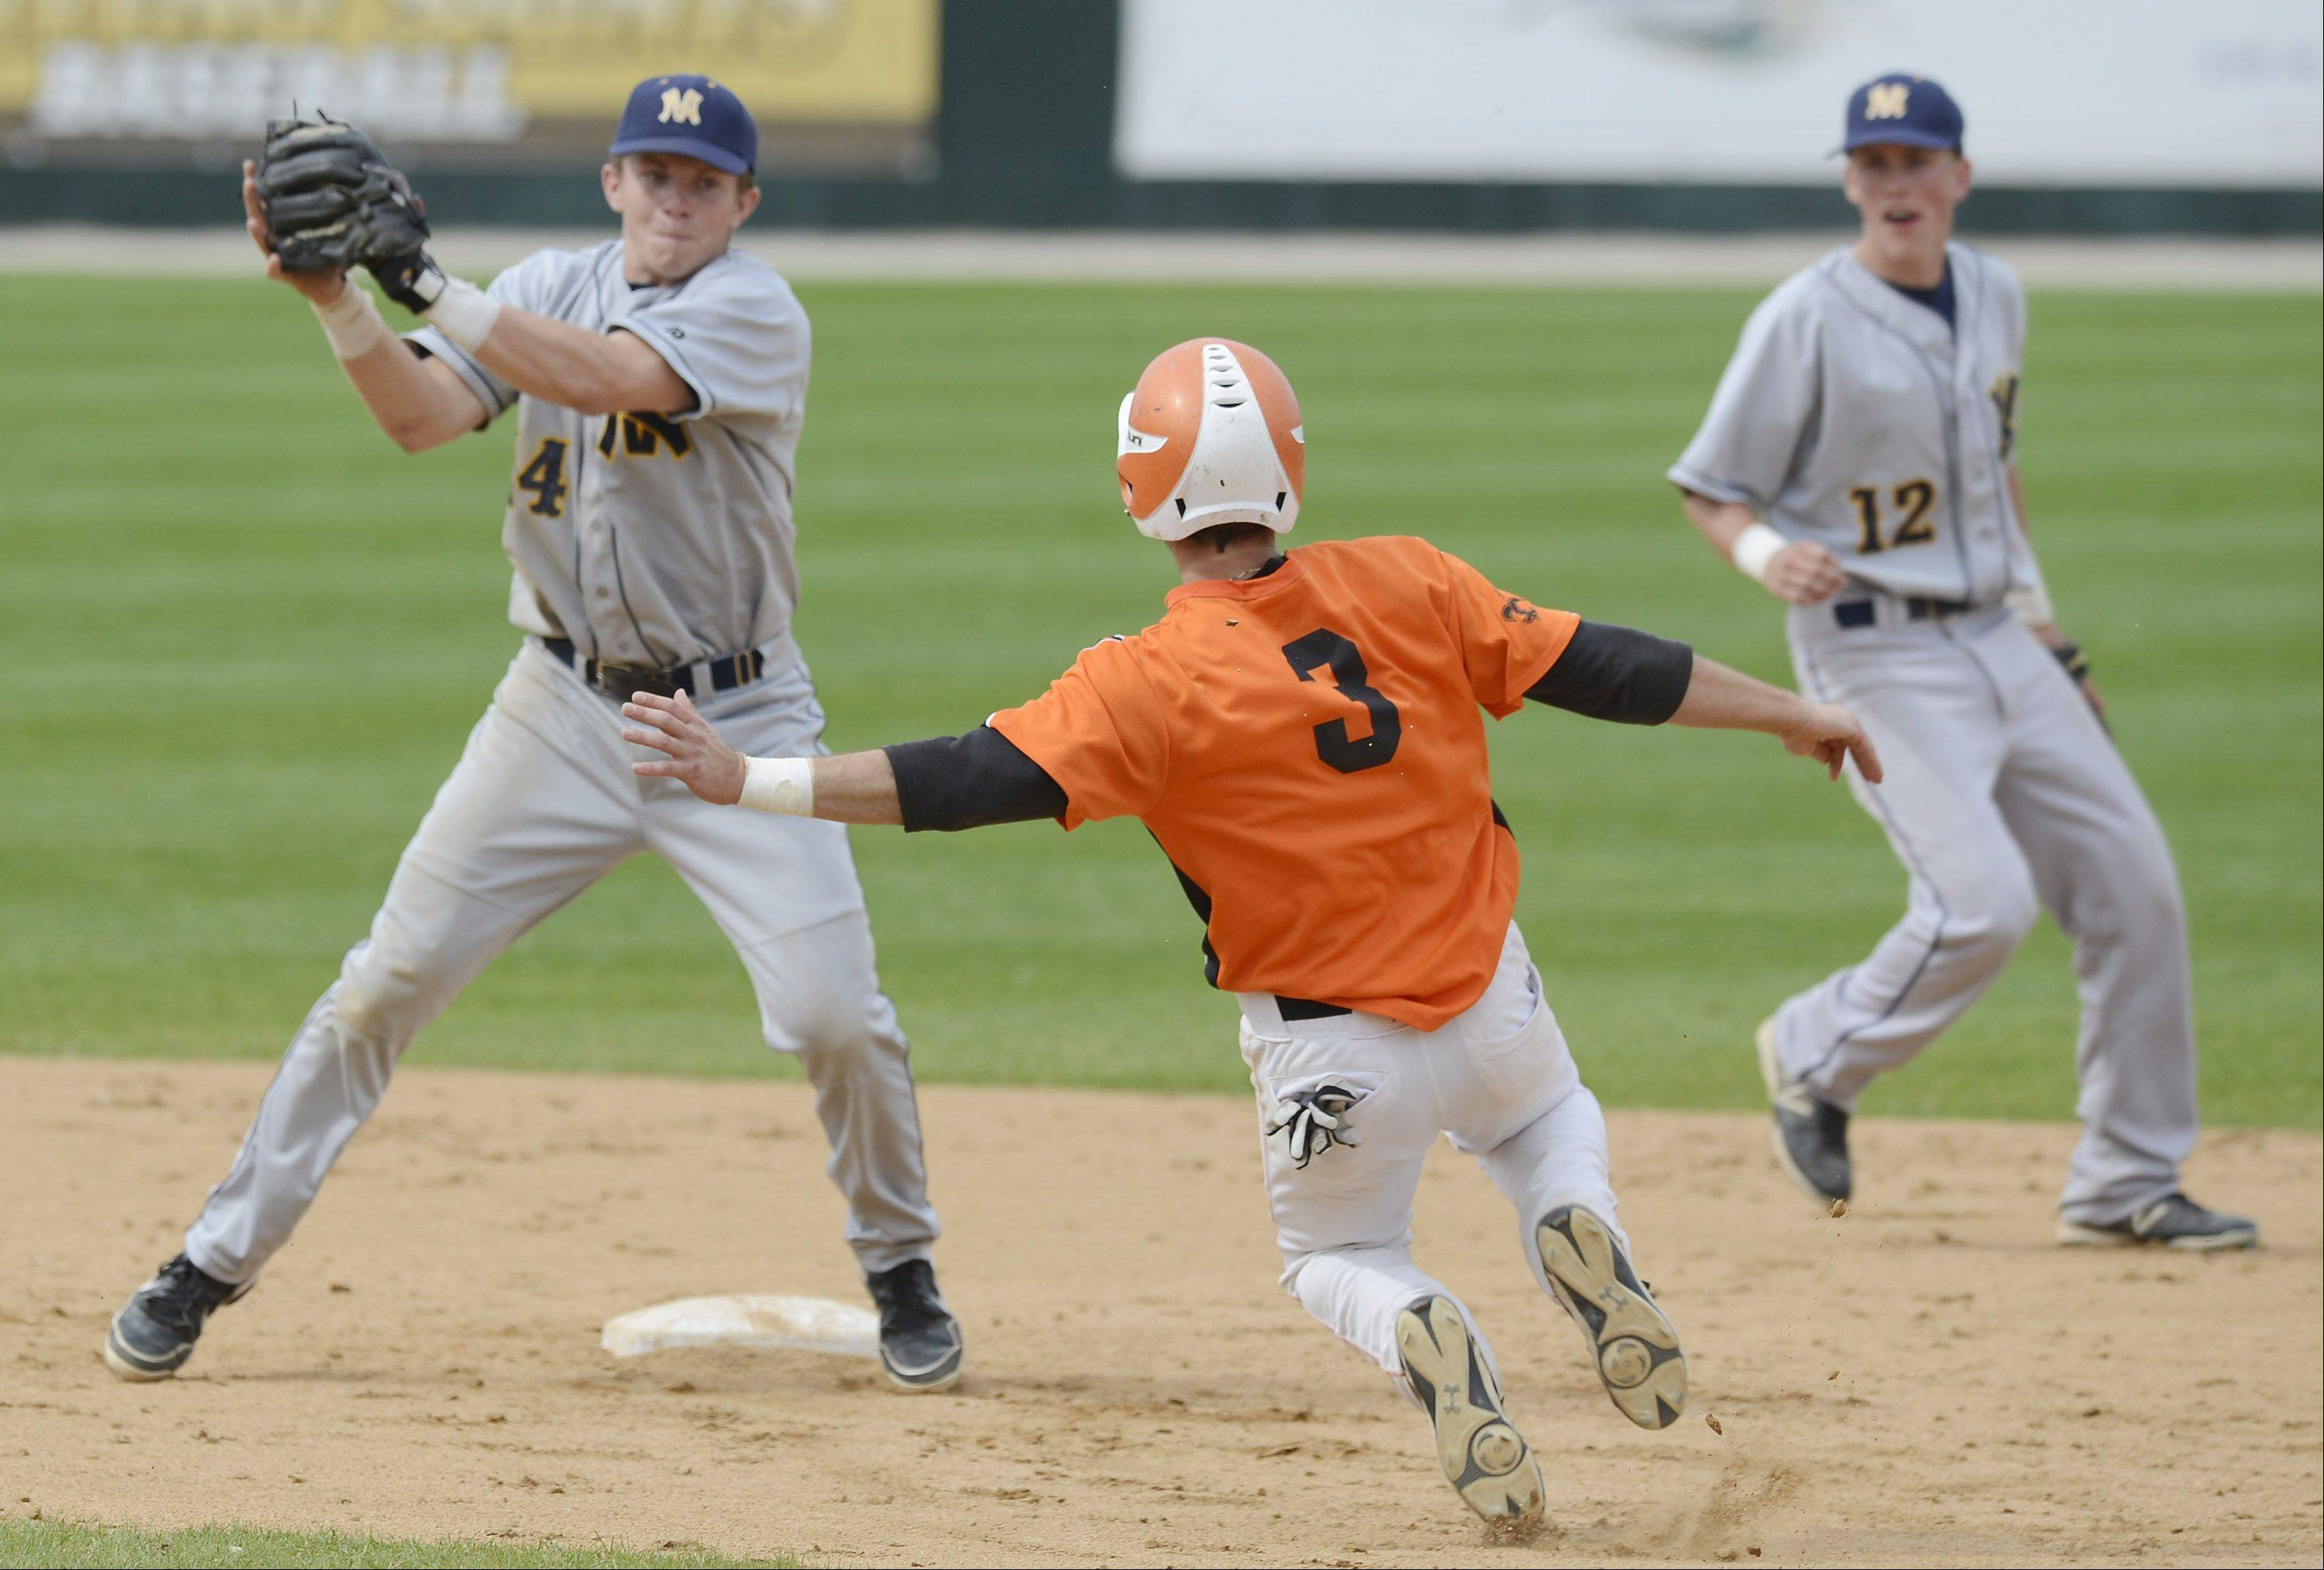 With shortstop Matt Wollnik backing up the play, Neuqua Valley shortstop Matt Wollnik gets ready to apply the tag on St. Charles East's Jack Dellostritto, who is called safe at second with a steal during the Class 4A baseball third-place game at Silver Cross Field in Joliet on Saturday.